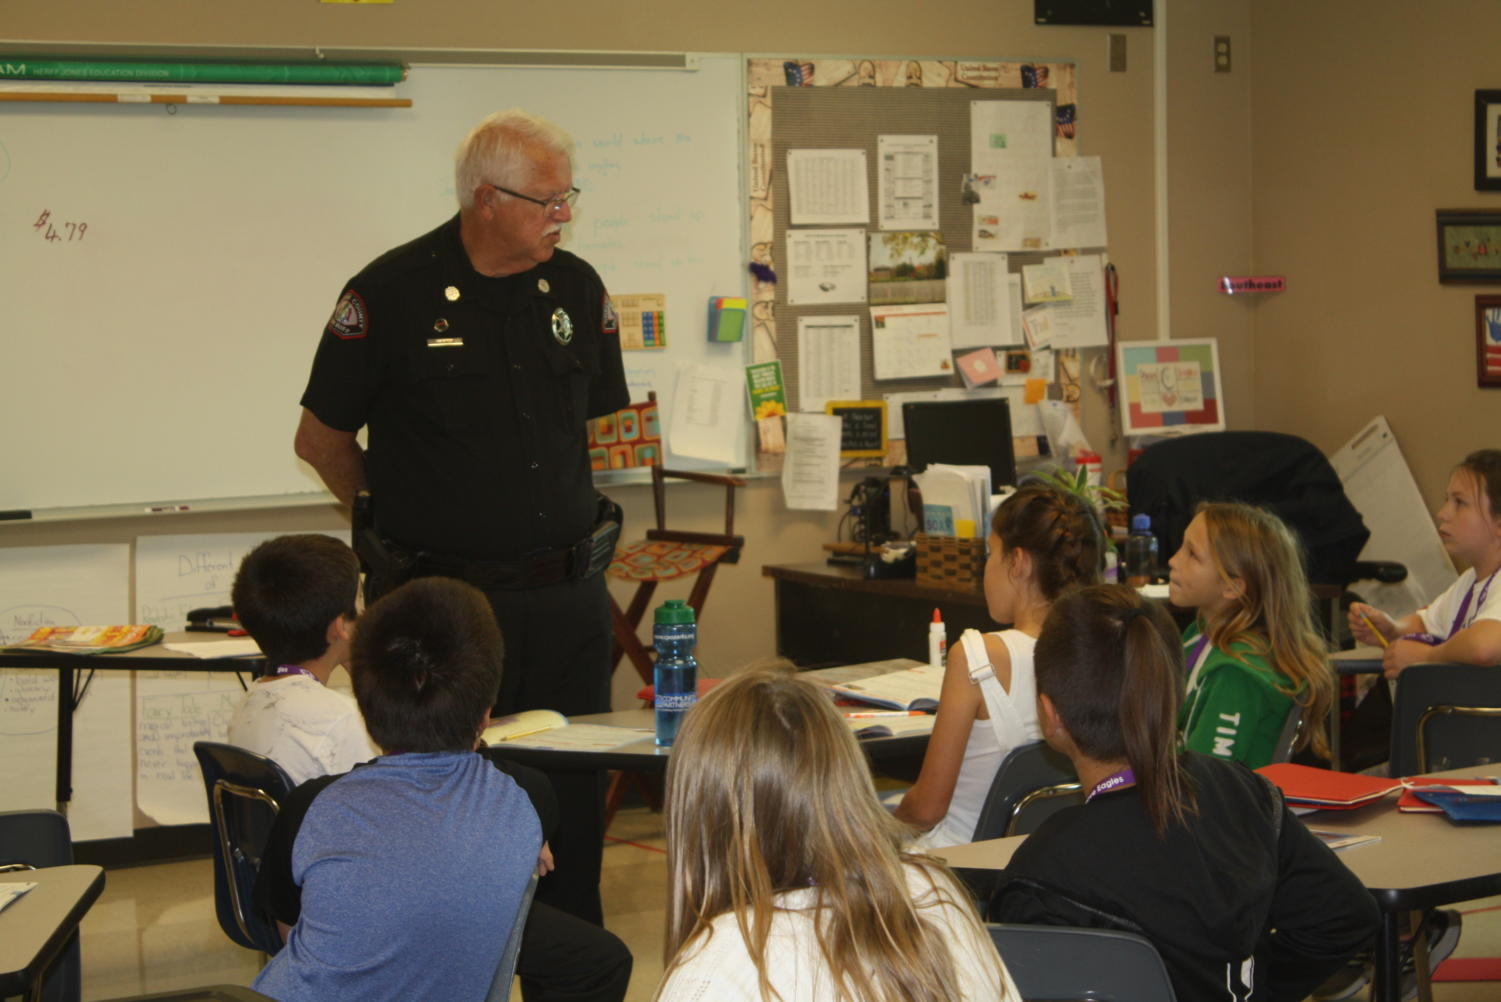 Officer Wagner talks with a class